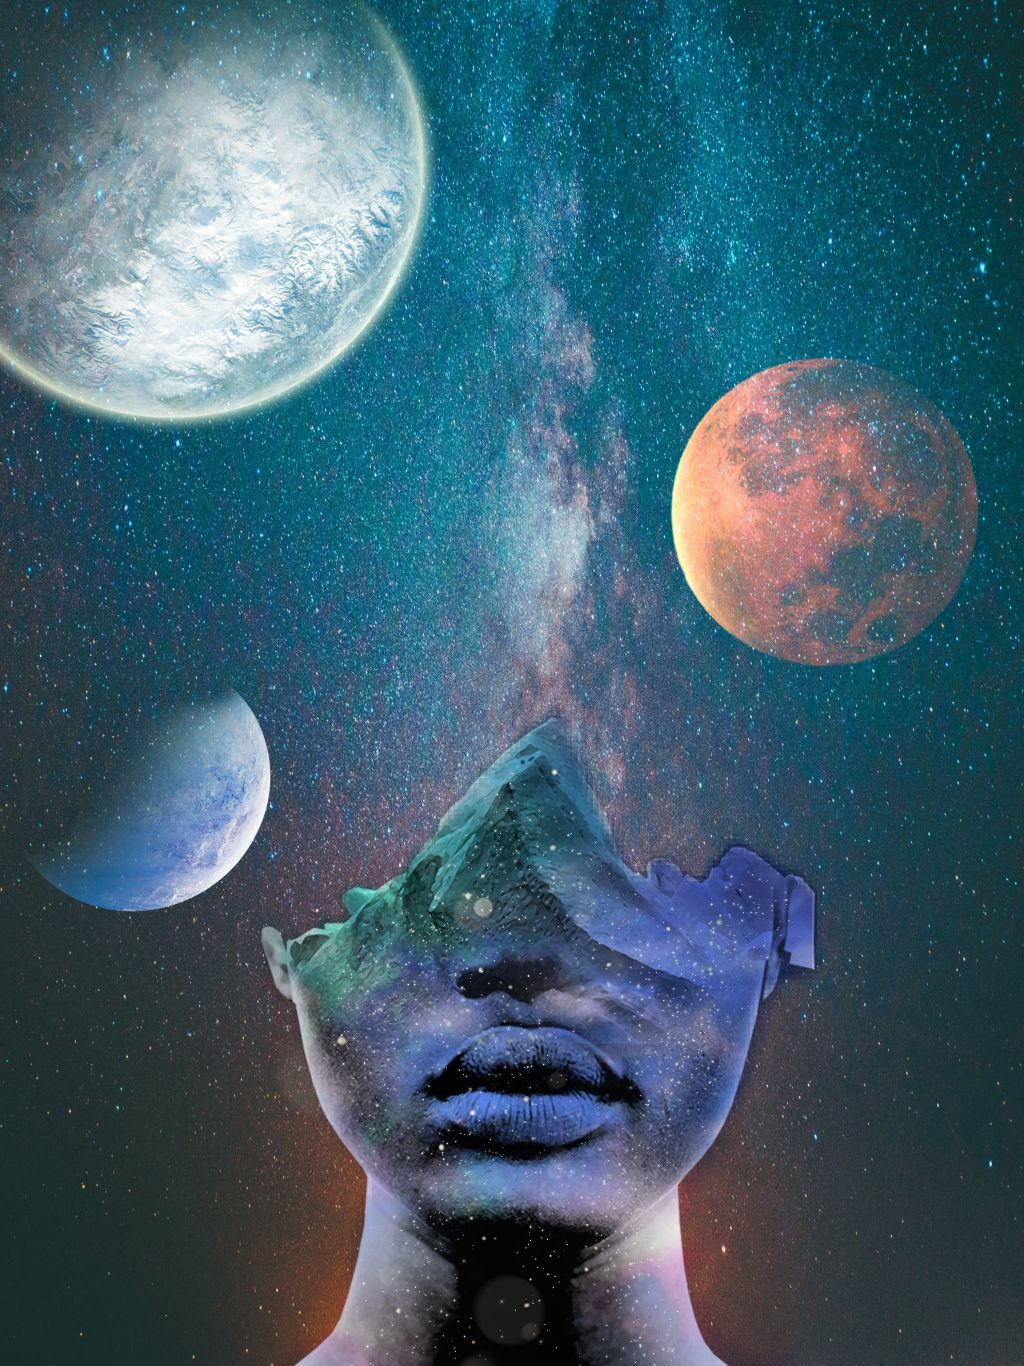 freetoedit galaxy face effects space magic stars planet